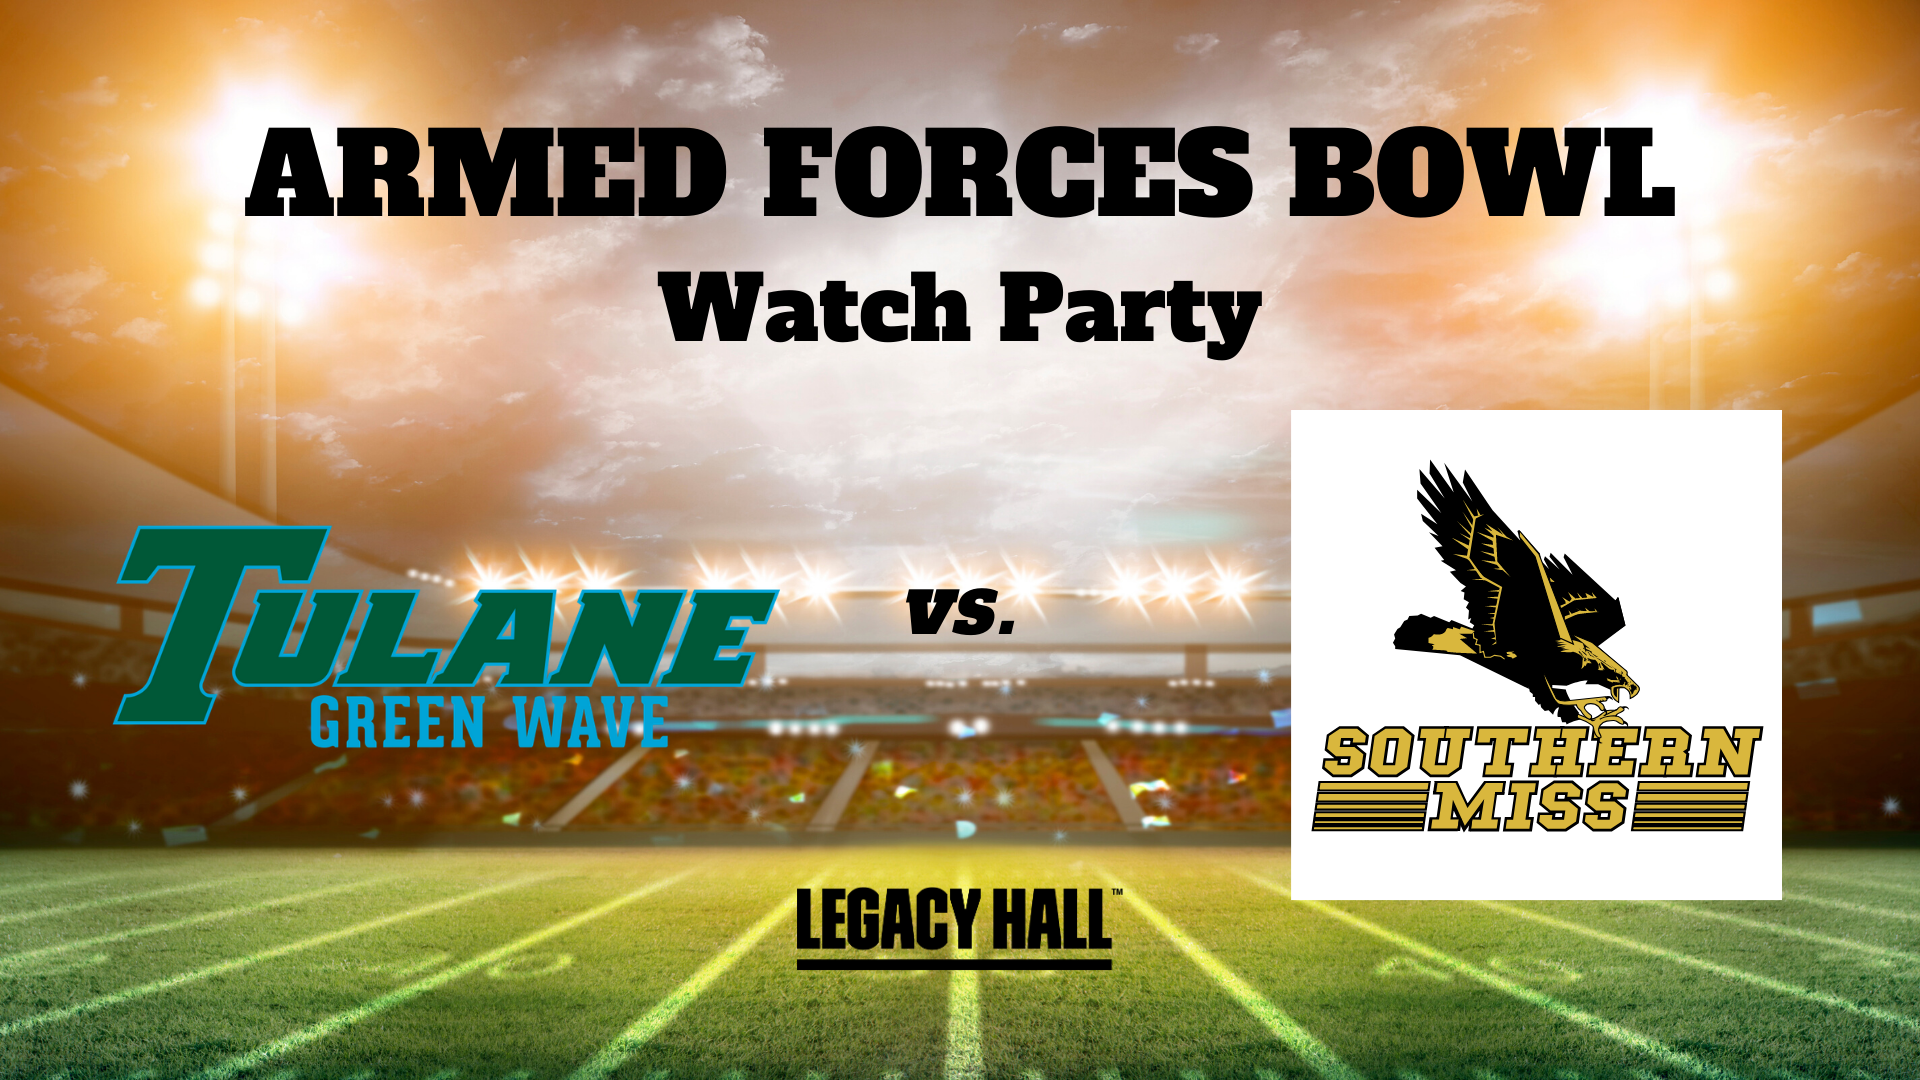 Armed Forces Bowl Watch Party - hero